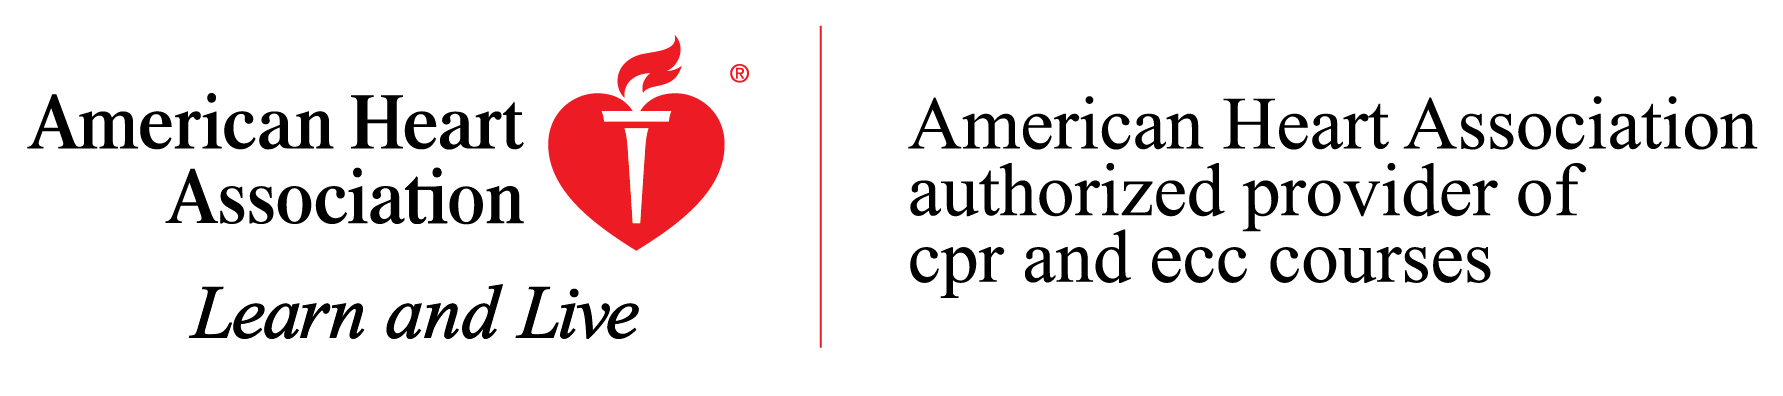 Danbury American Heart Association Professional CPR Educator